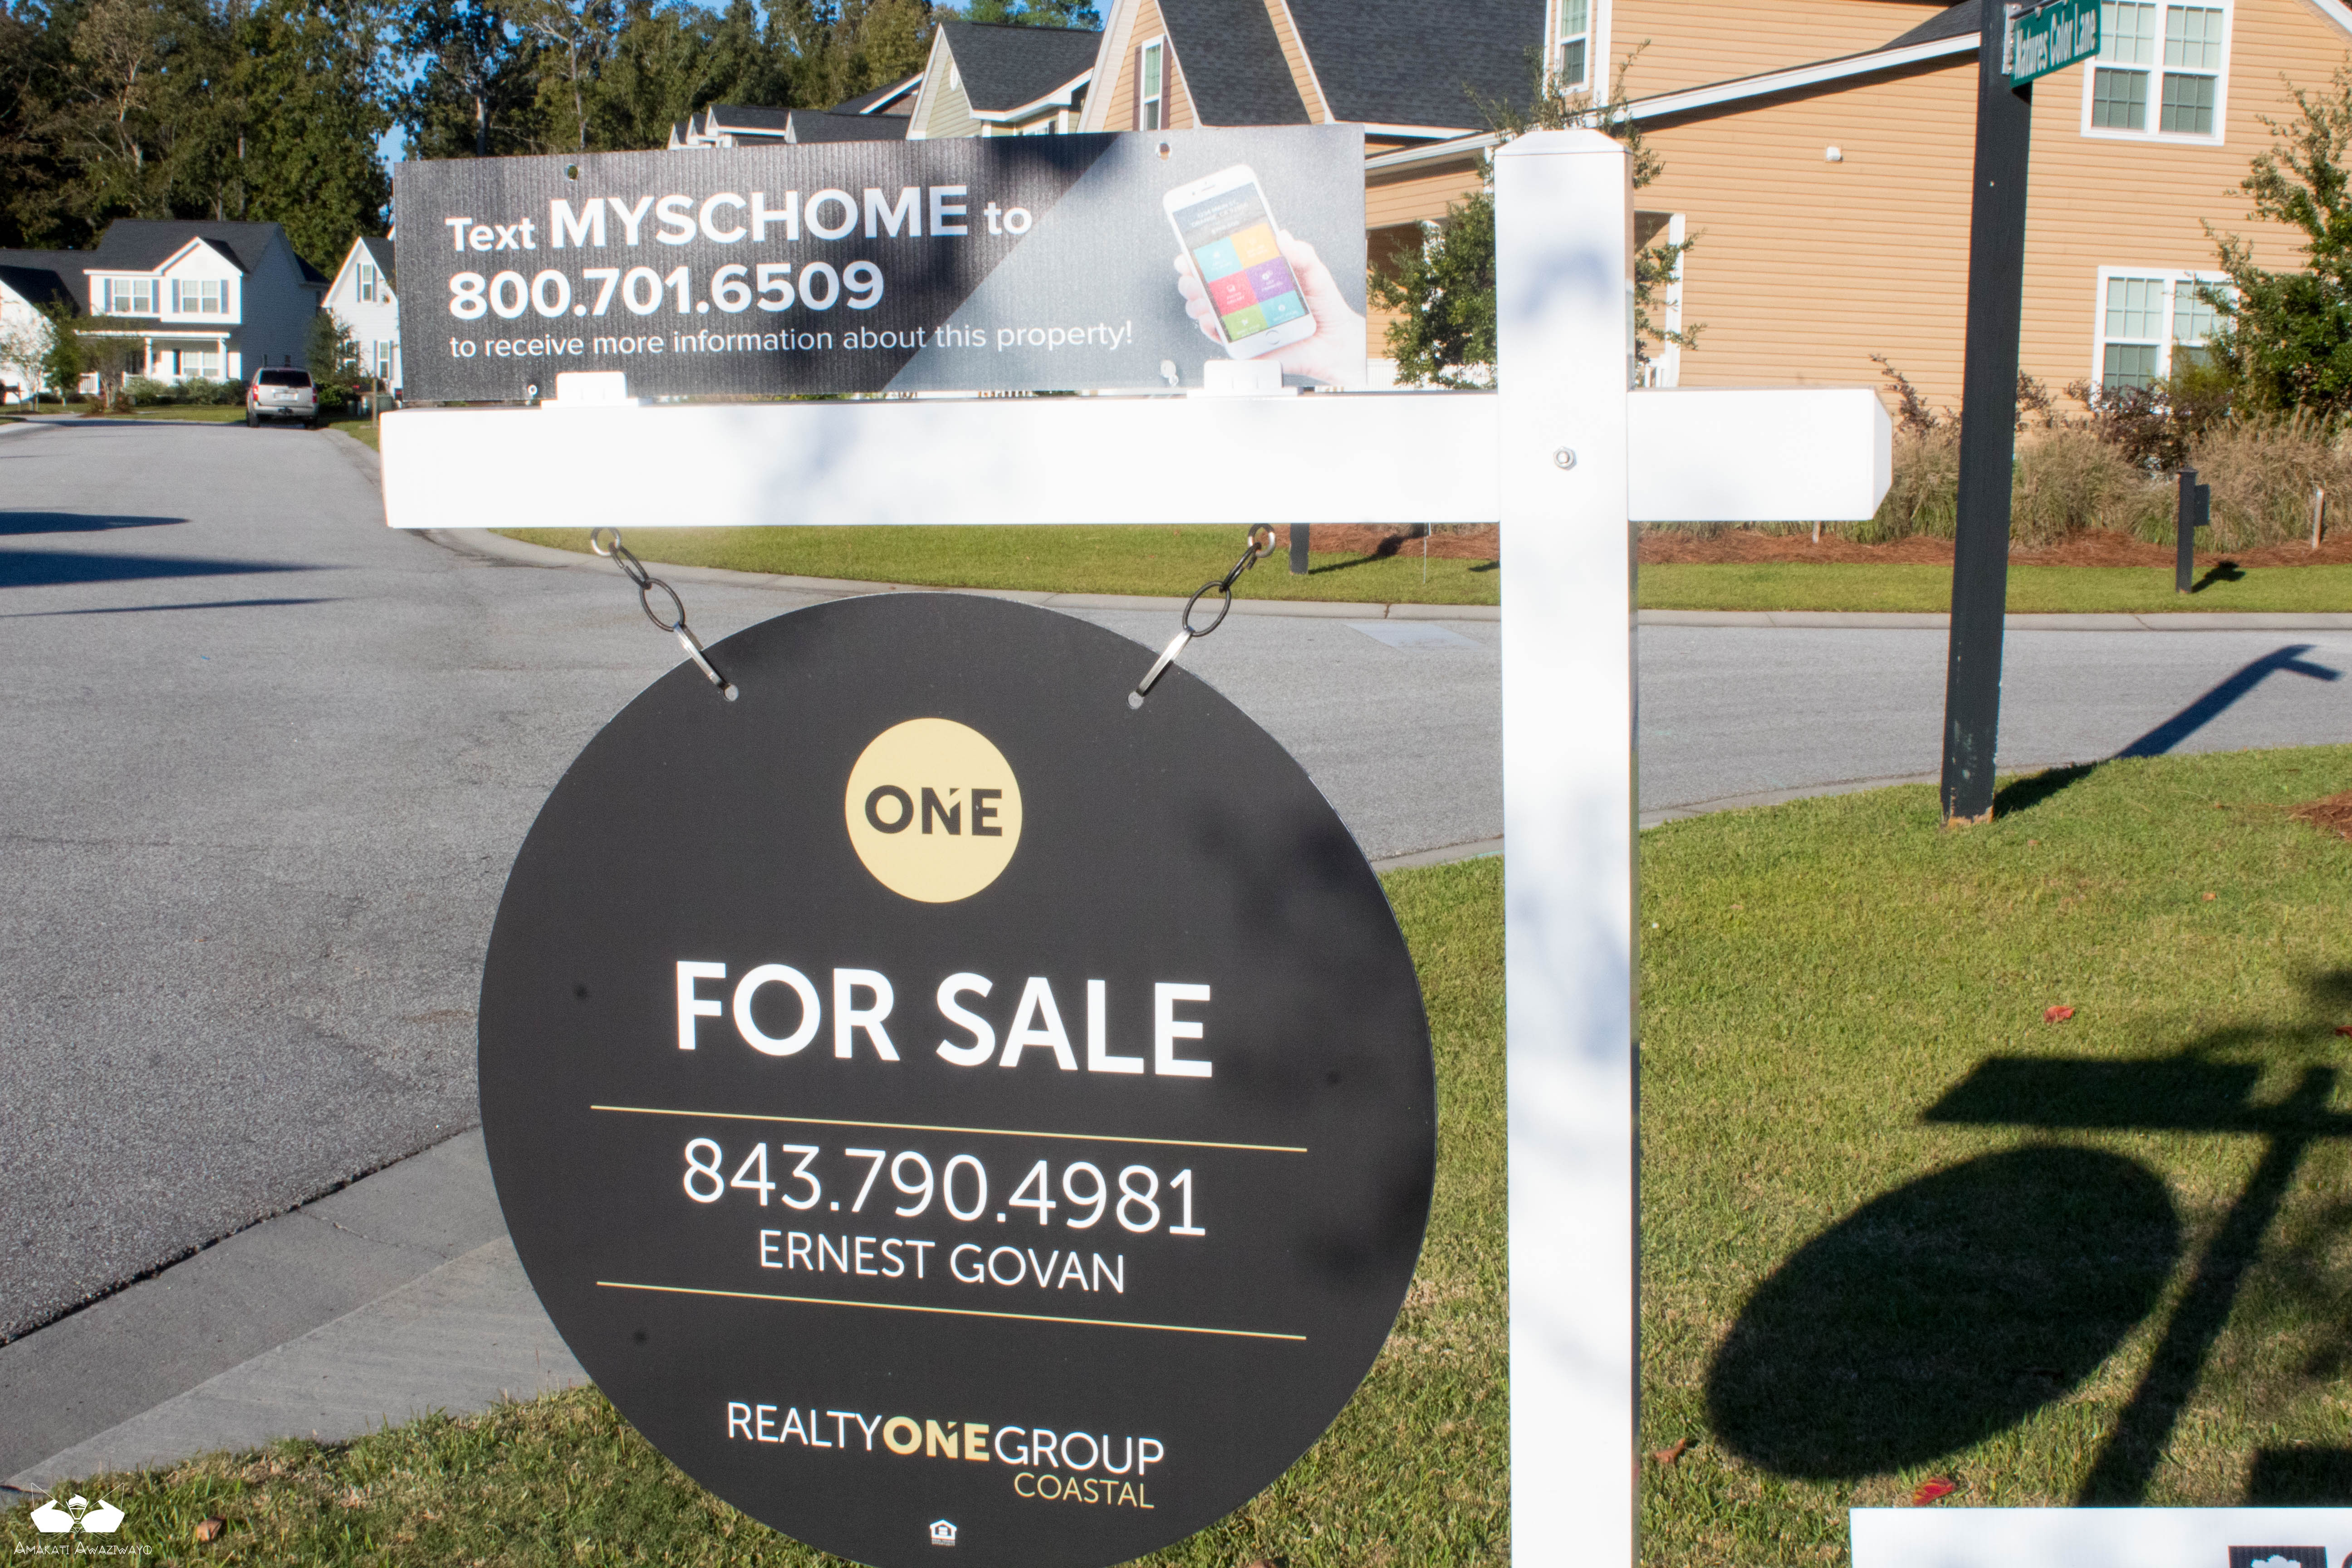 Hanging pole sign with text that reads: ONE FOR SALE 843.790.4981 ERNEST GOVAN REALTYONEGROUP COASTAL